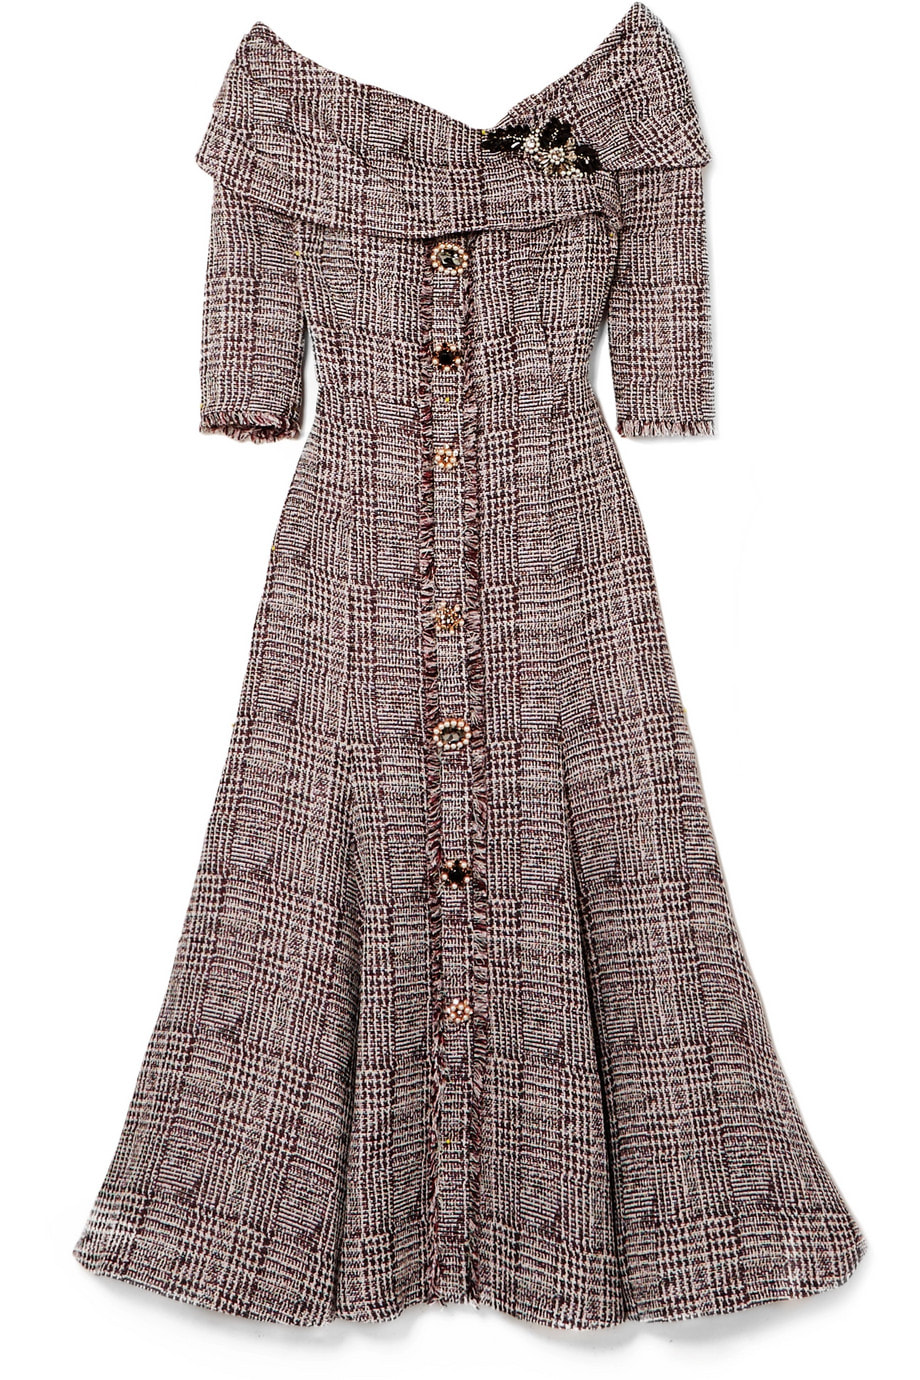 Erdem 'Iman' off-the-shoulder embellished bouclé-tweed midi dress